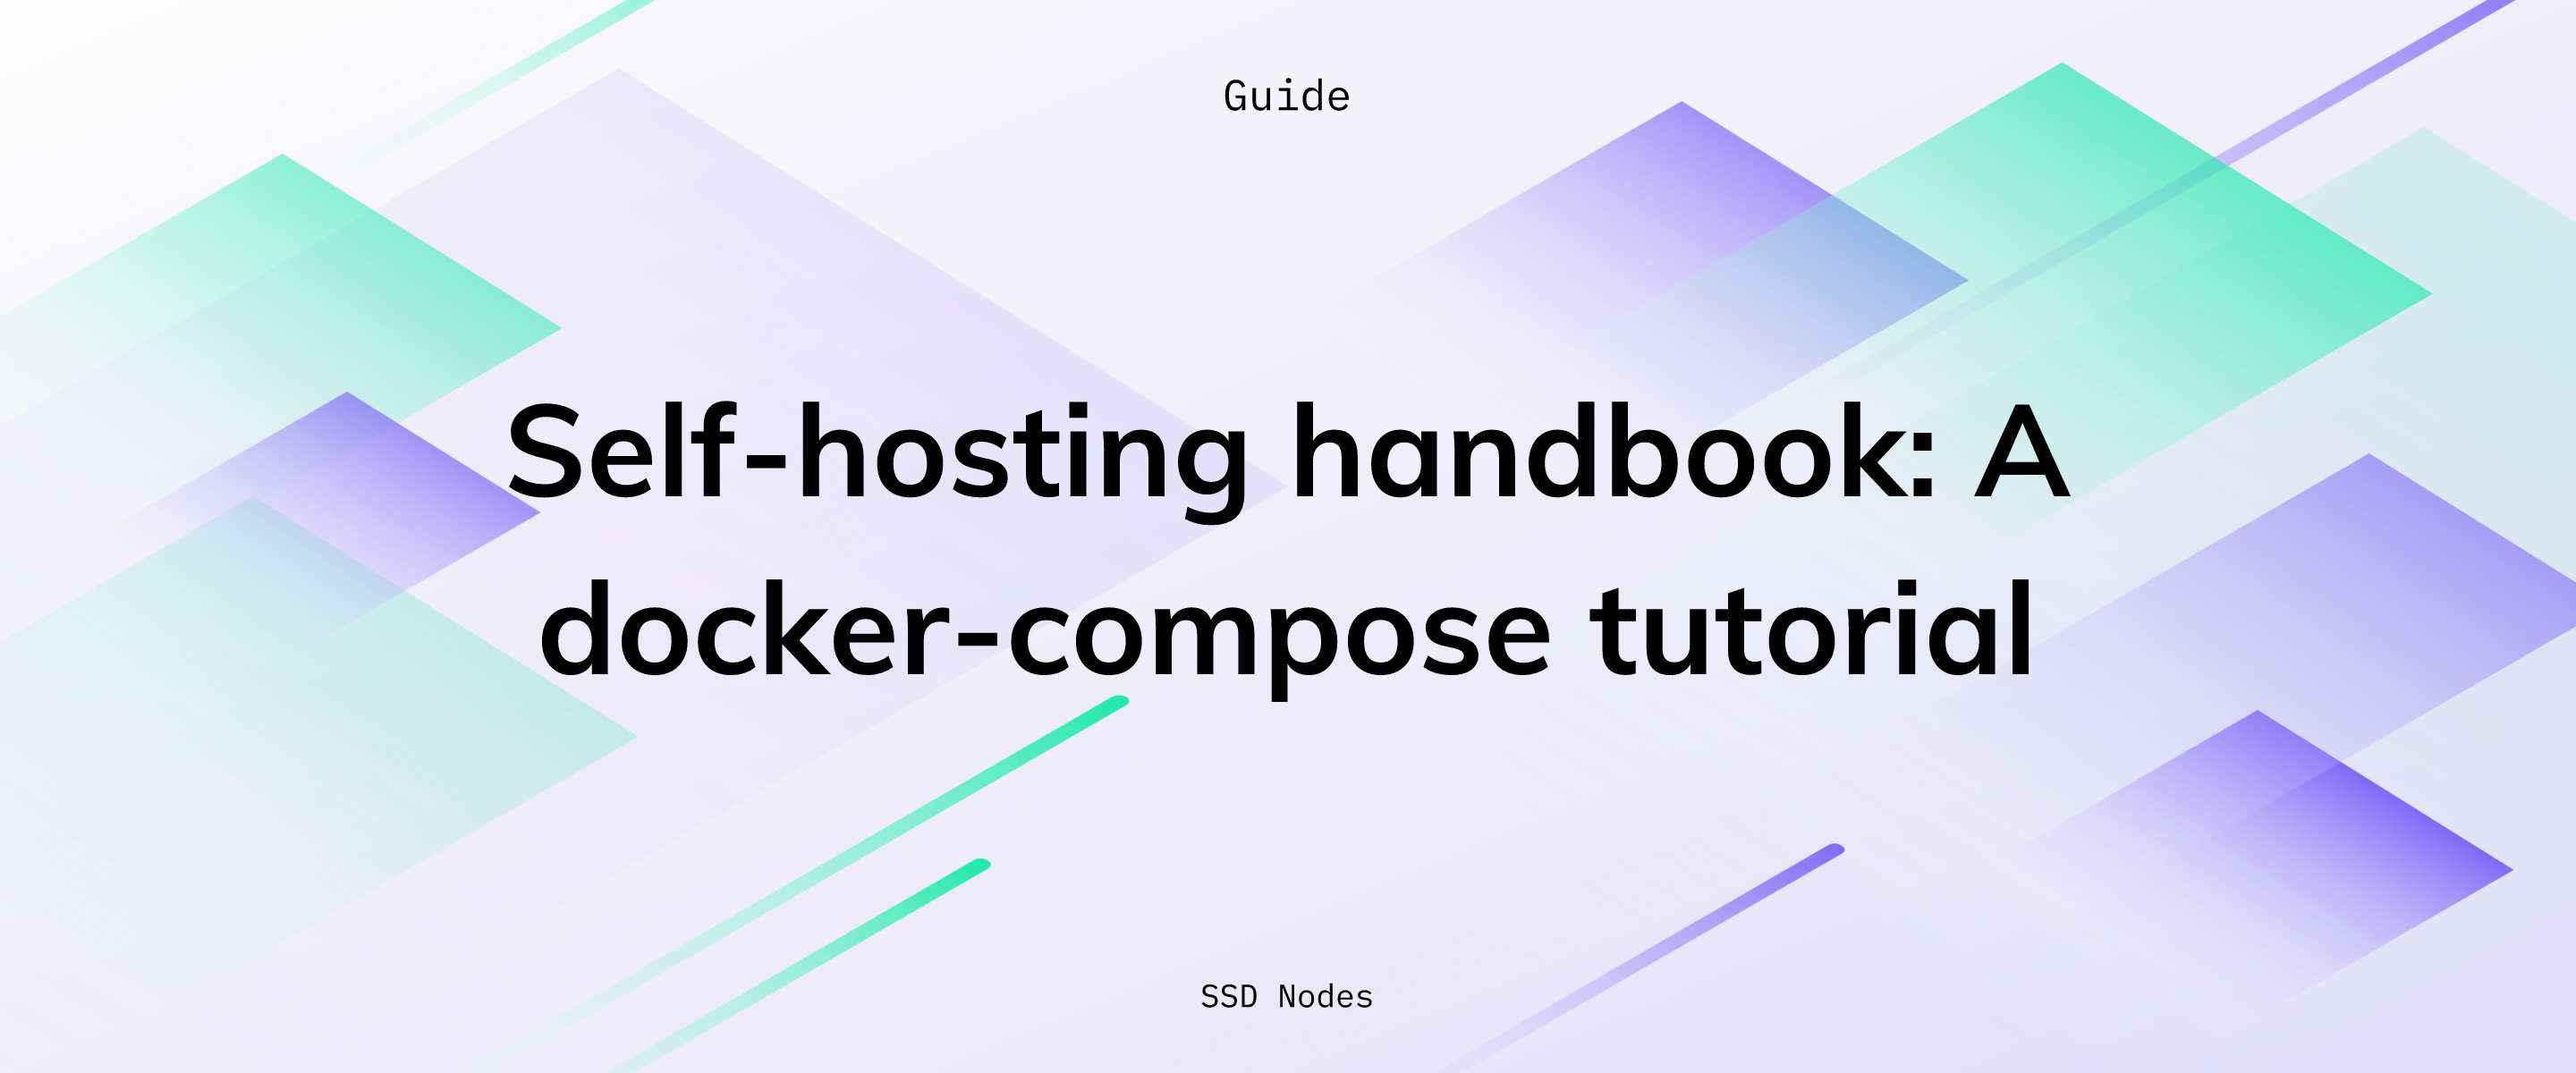 Self-hosting handbook: A docker-compose tutorial | Serverwise